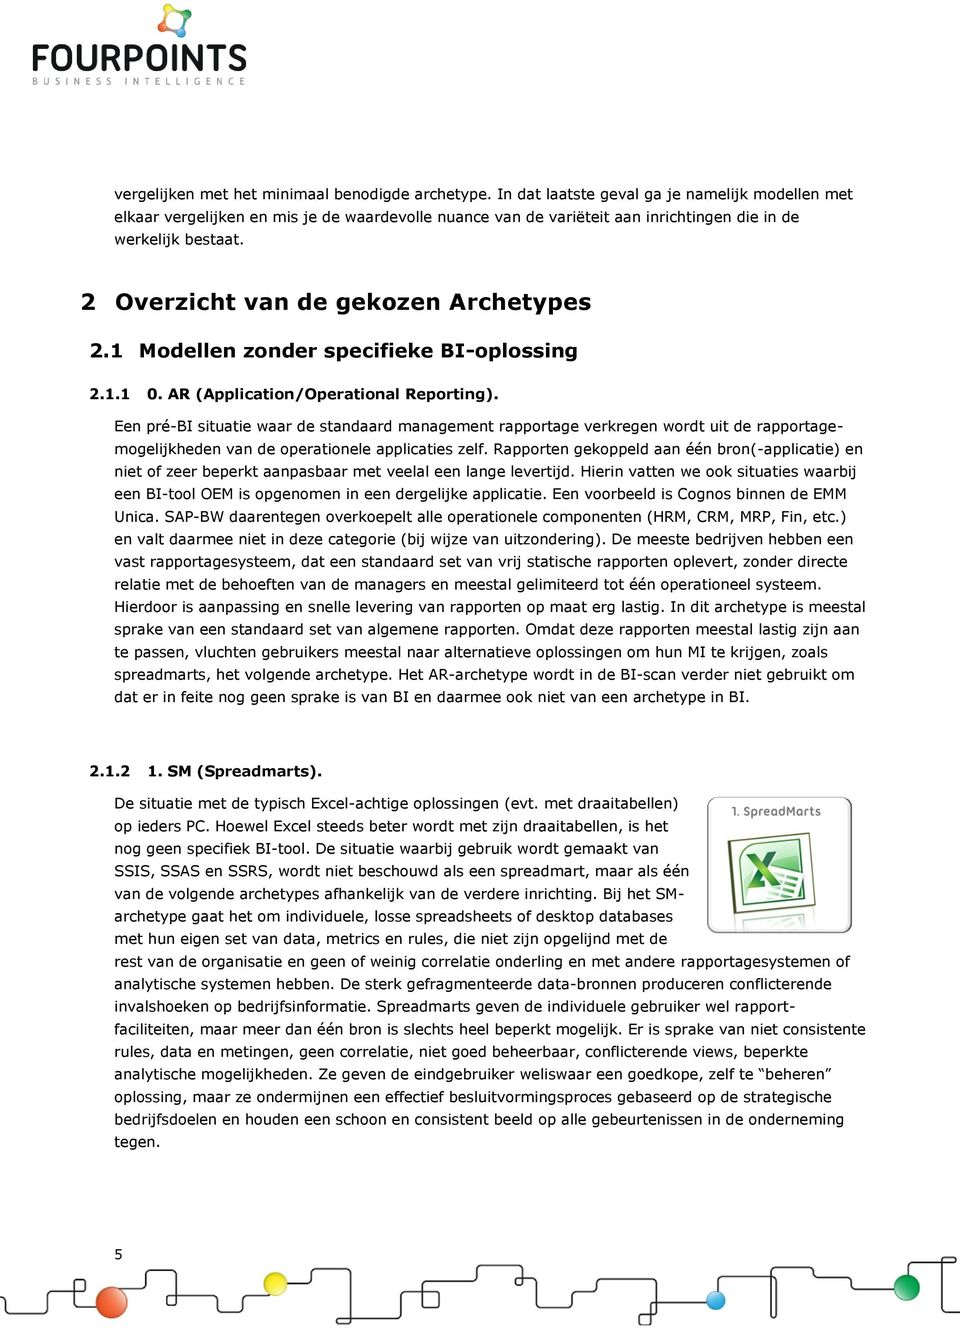 2 Overzicht van de gekozen Archetypes 2.1 Modellen zonder specifieke BI-oplossing 2.1.1 0. AR (Application/Operational Reporting).